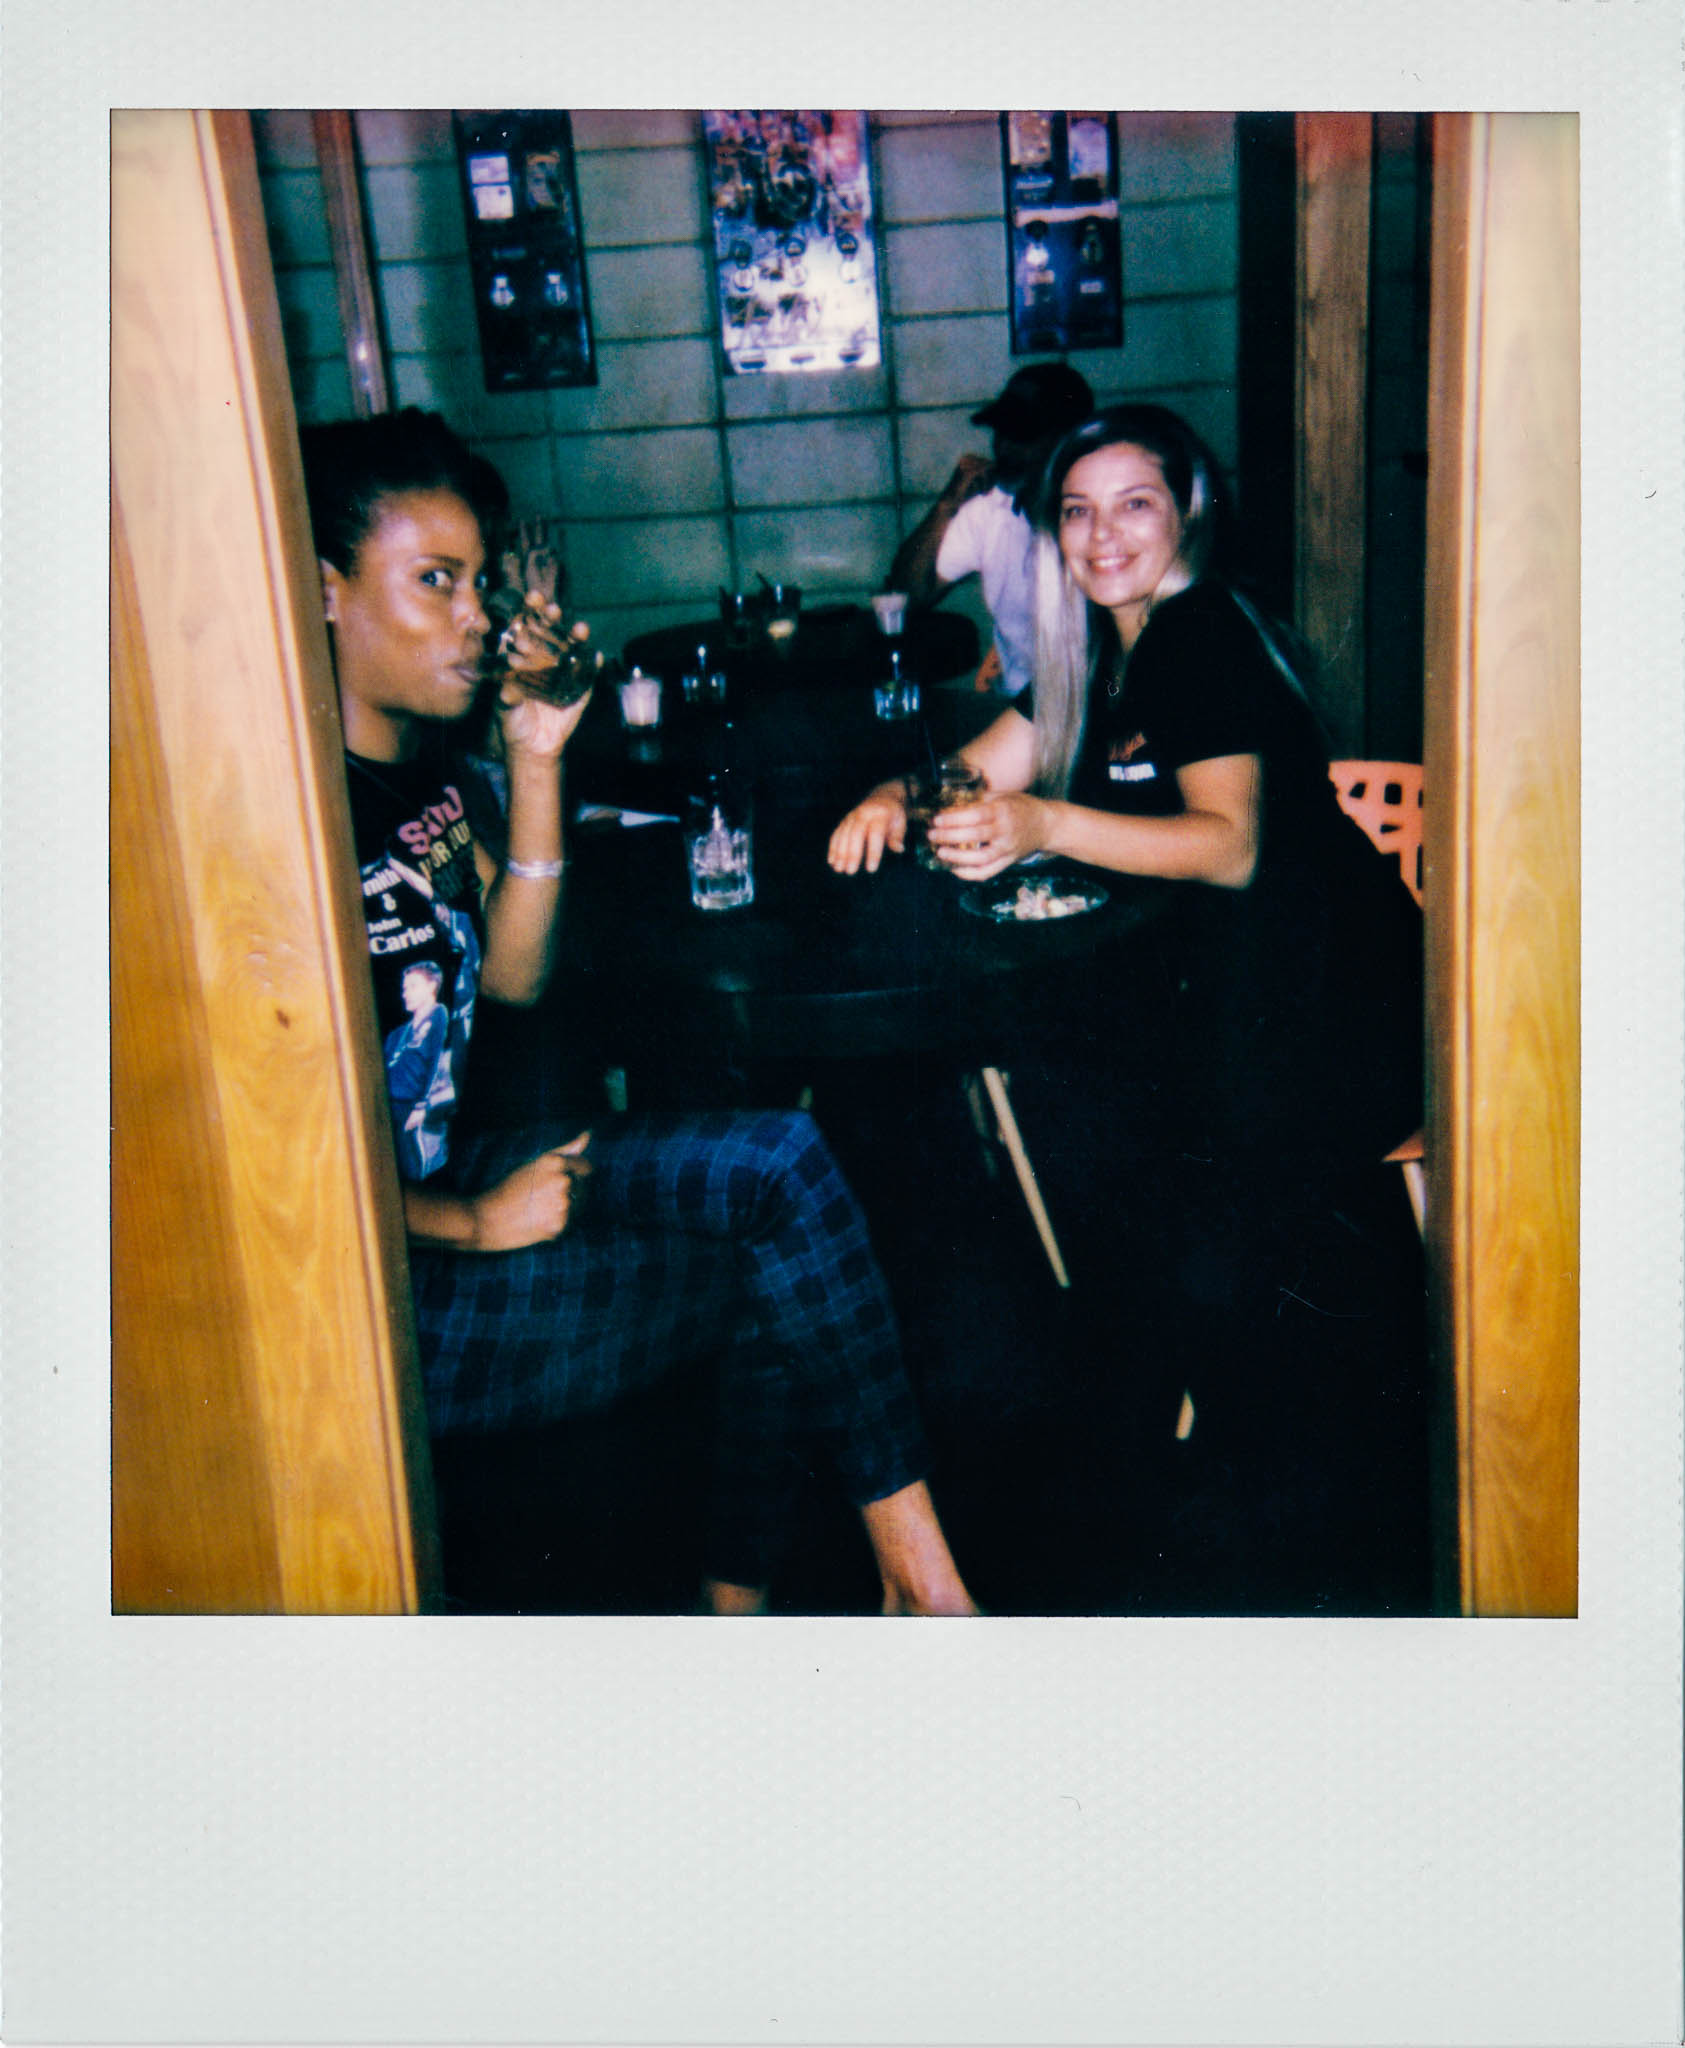 Two woman sitting, smiling, and drinking, at Wallys Mills Avenue Liquors